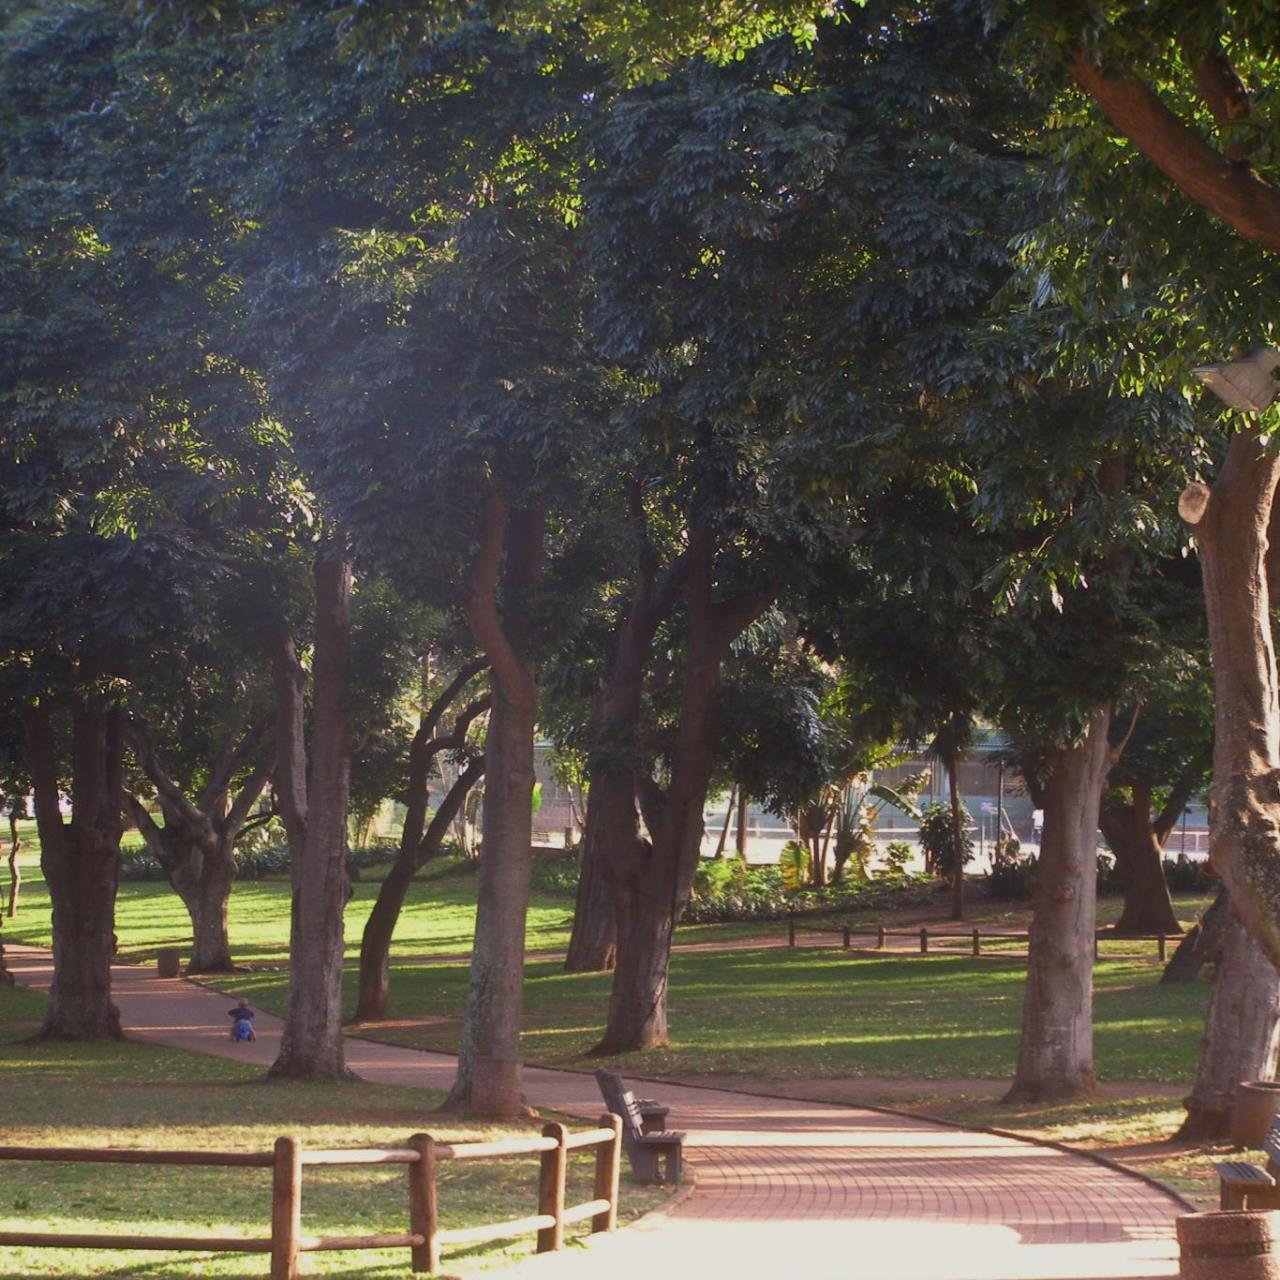 Trichilia dregeana avenue of trees